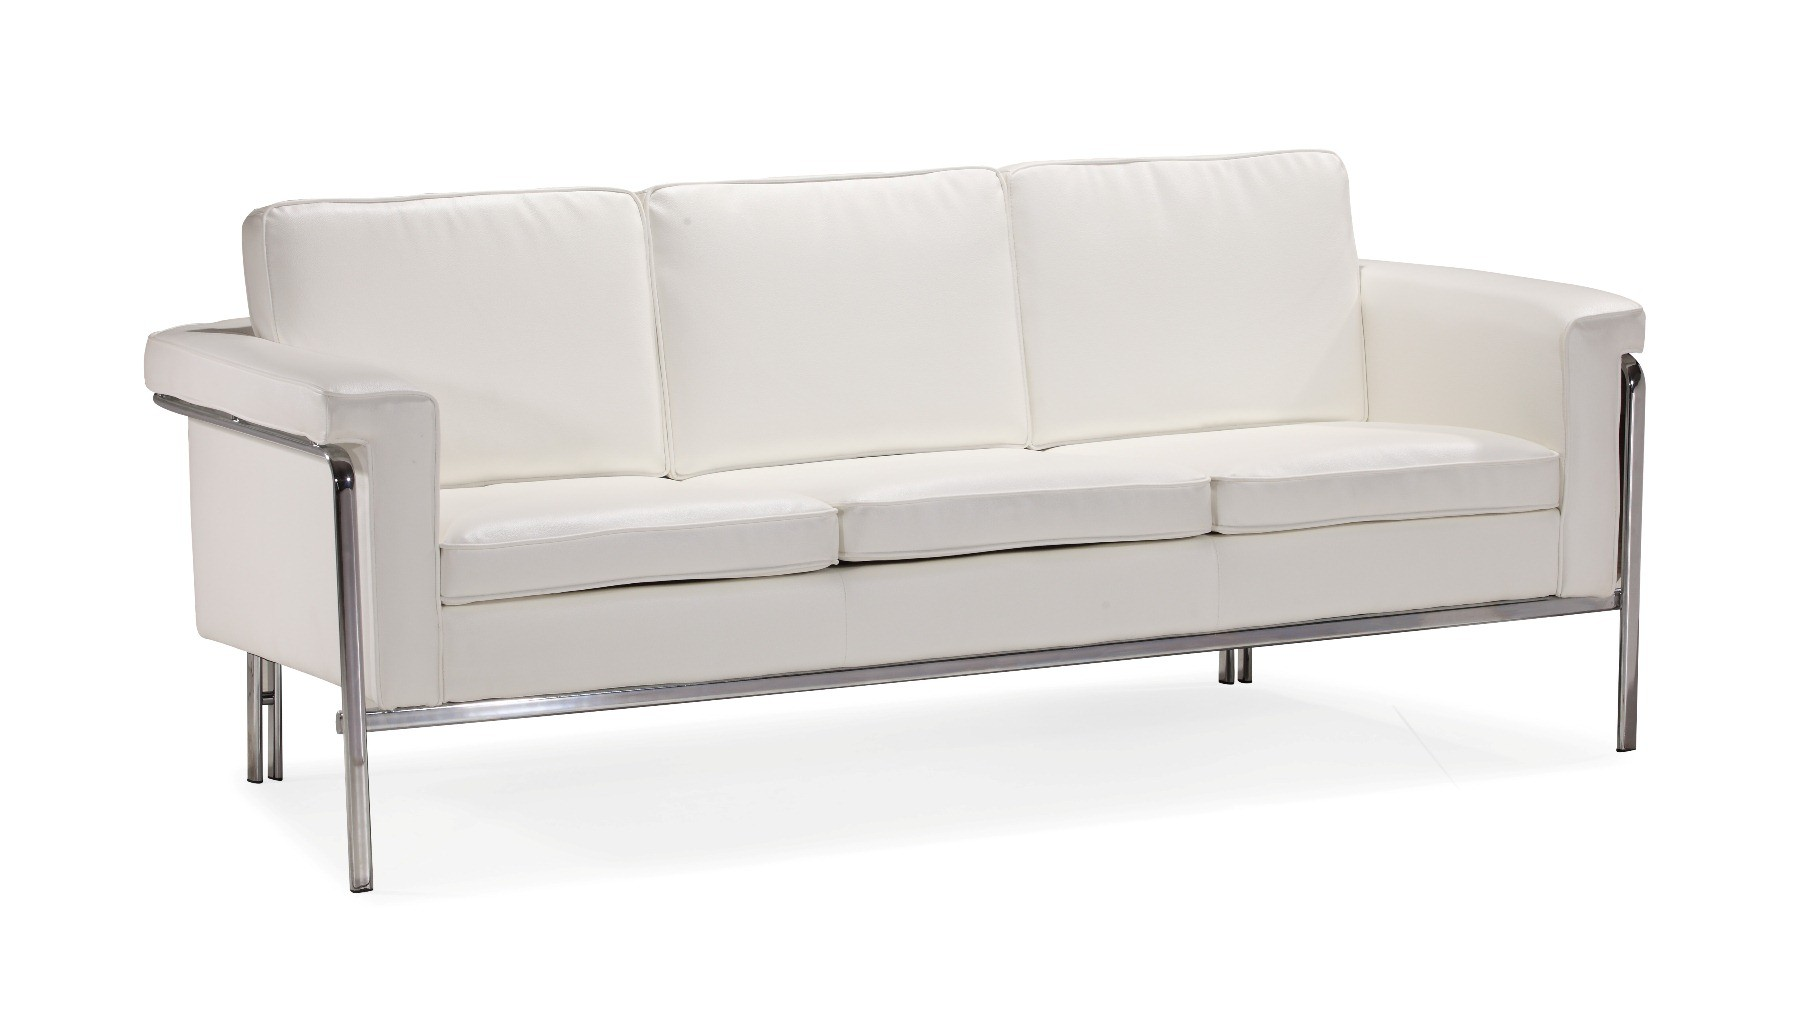 White Or Black Leather Contemporary Sofa With Chrome Legs And Frame Prime Classic Design Modern